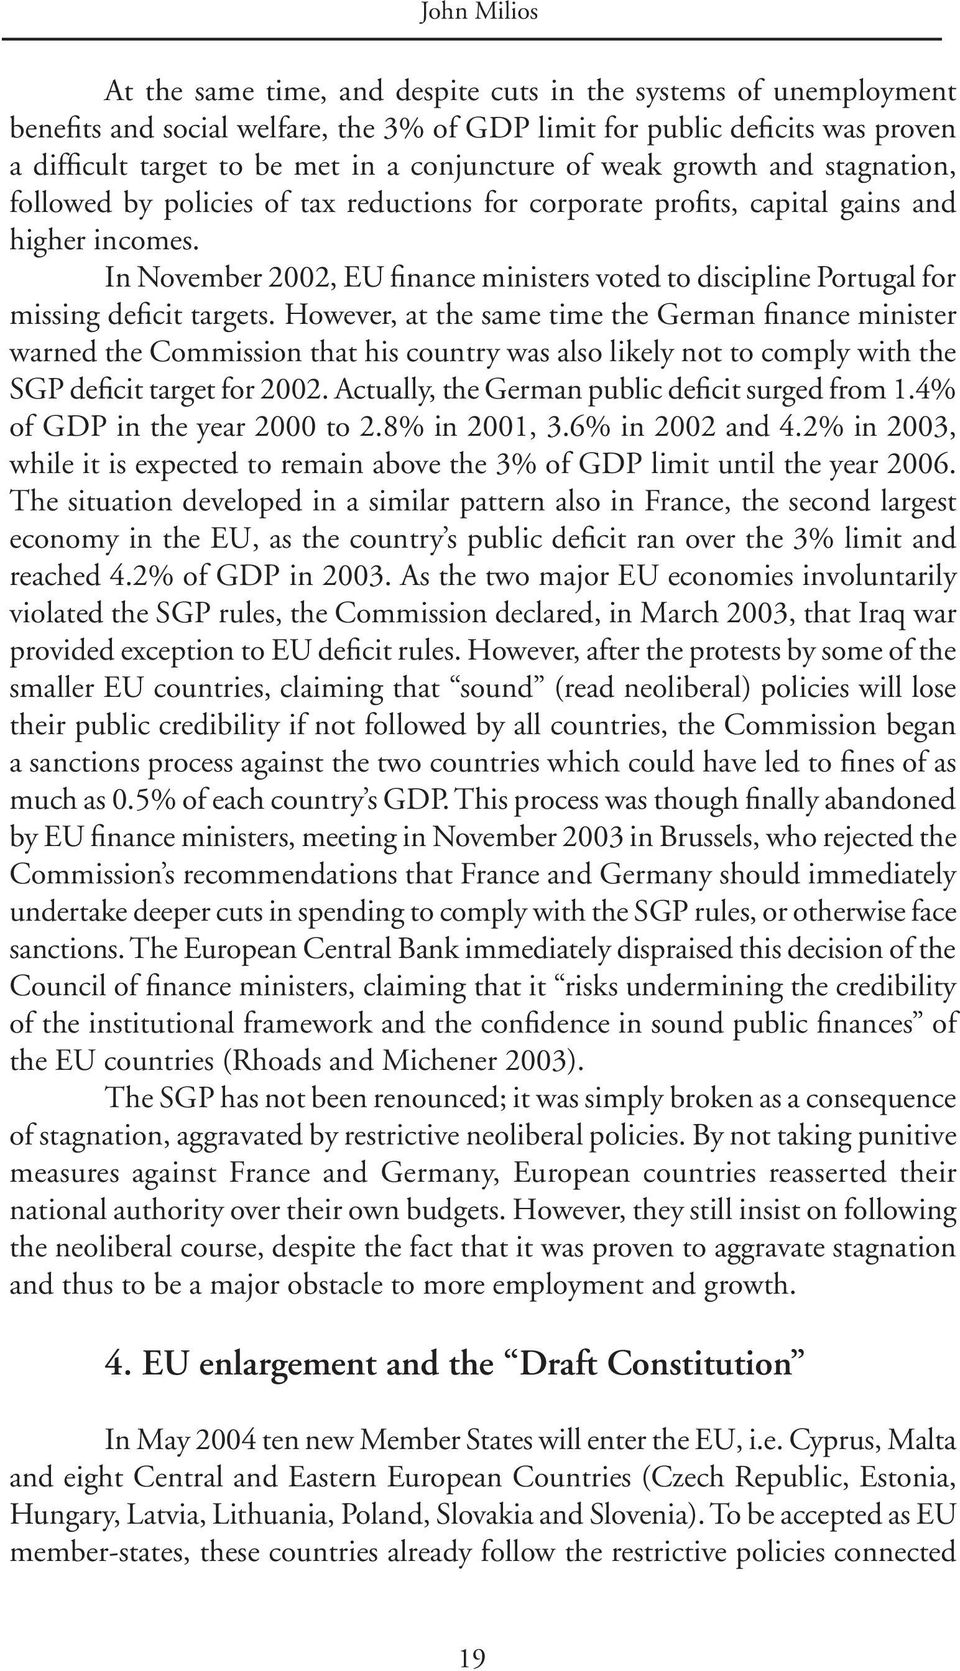 In November 2002, EU finance ministers voted to discipline Portugal for missing deficit targets.